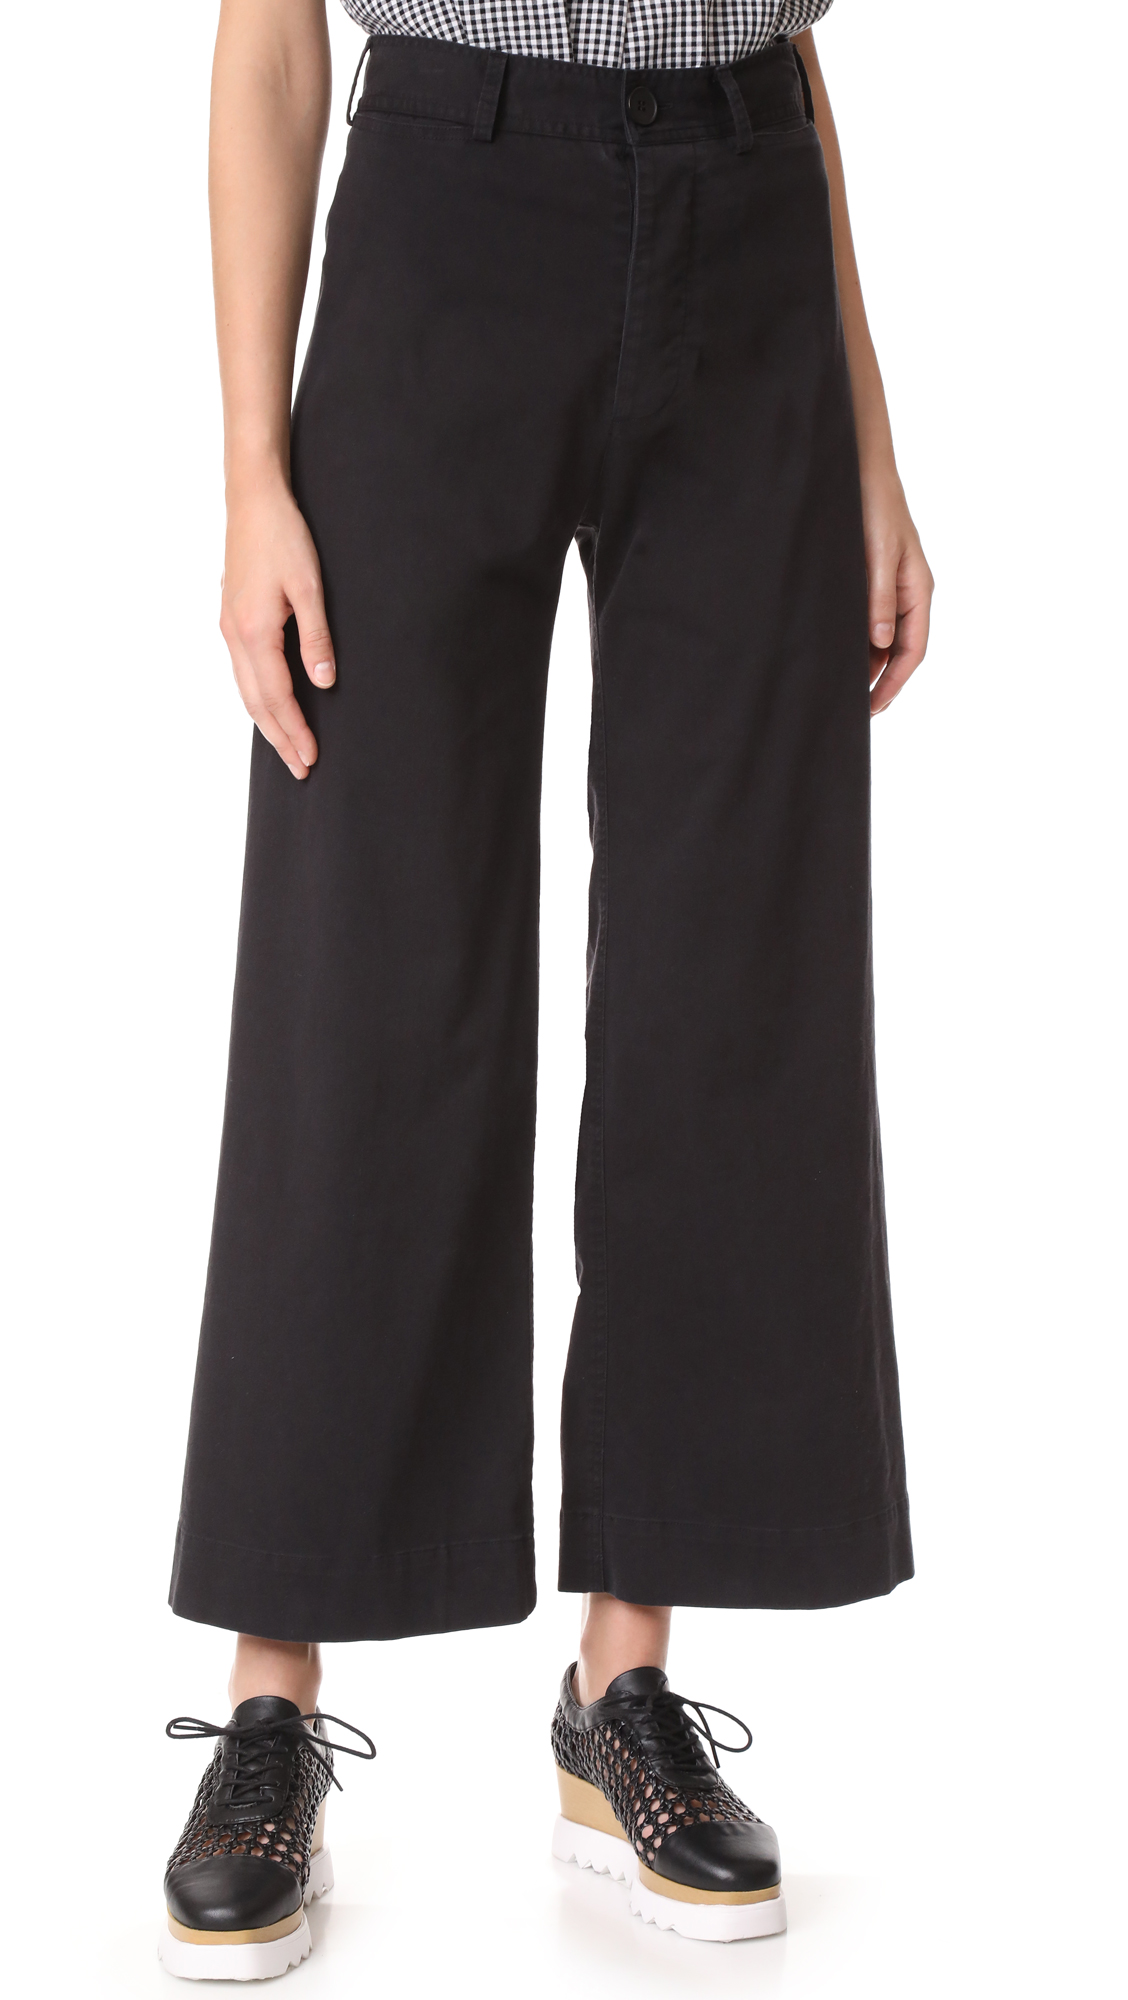 Emerson Thorpe Ryan High Waisted Wide Leg Pants - Black